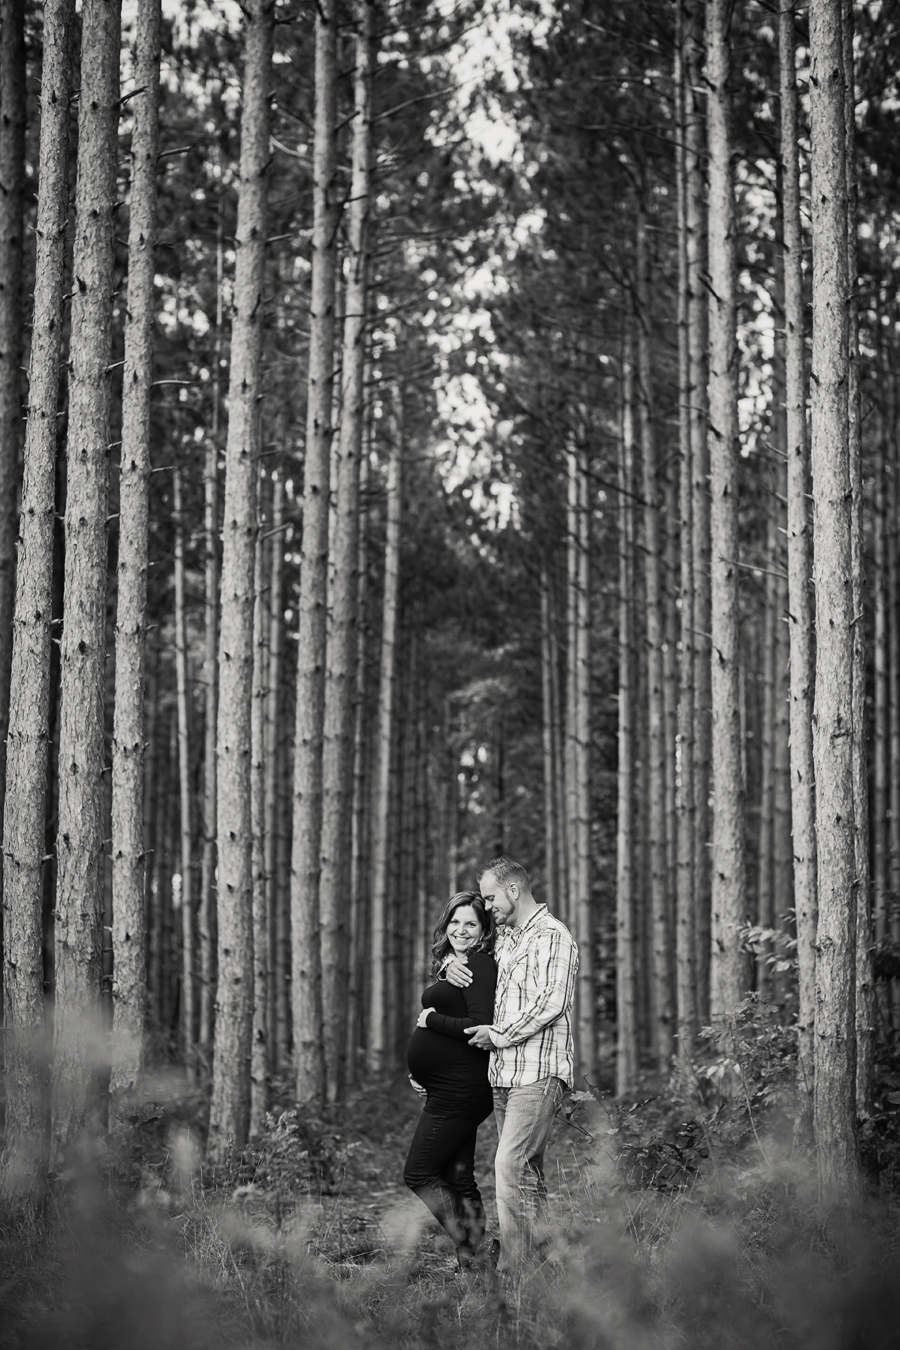 romantic-maternity-woods03.jpg